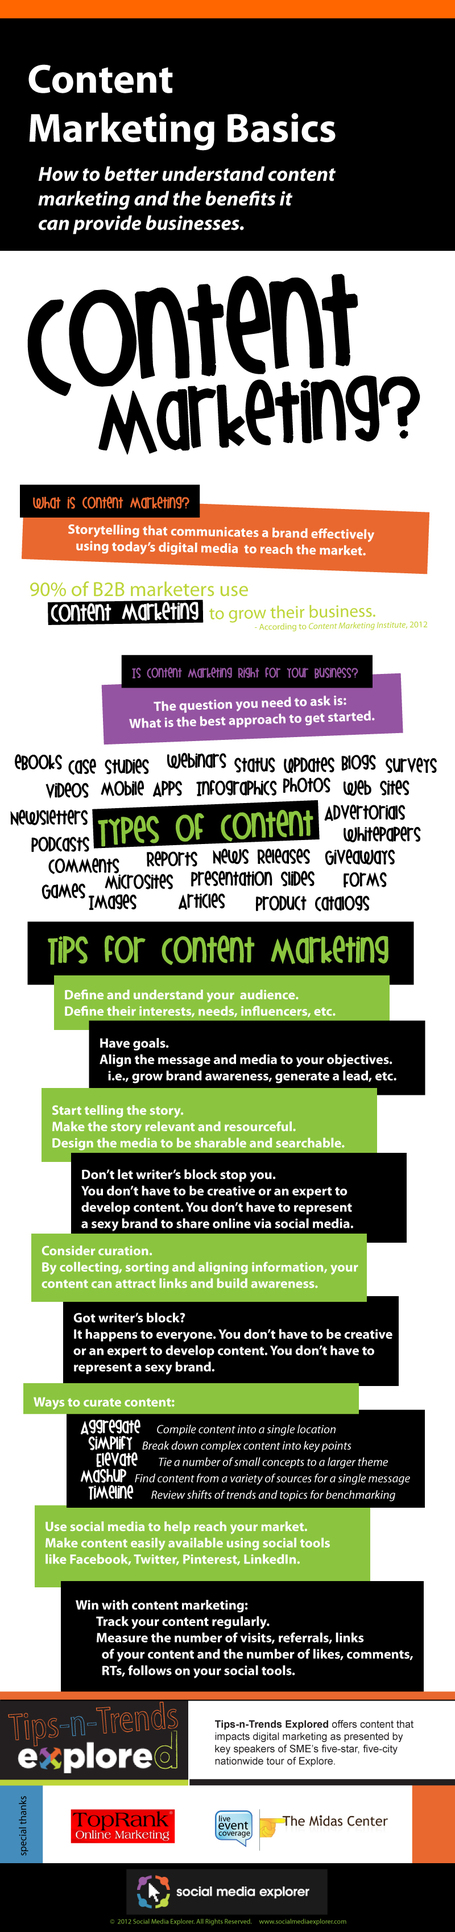 Content Marketing Basics [INFOGRAPHIC] | formation 2.0 | Scoop.it